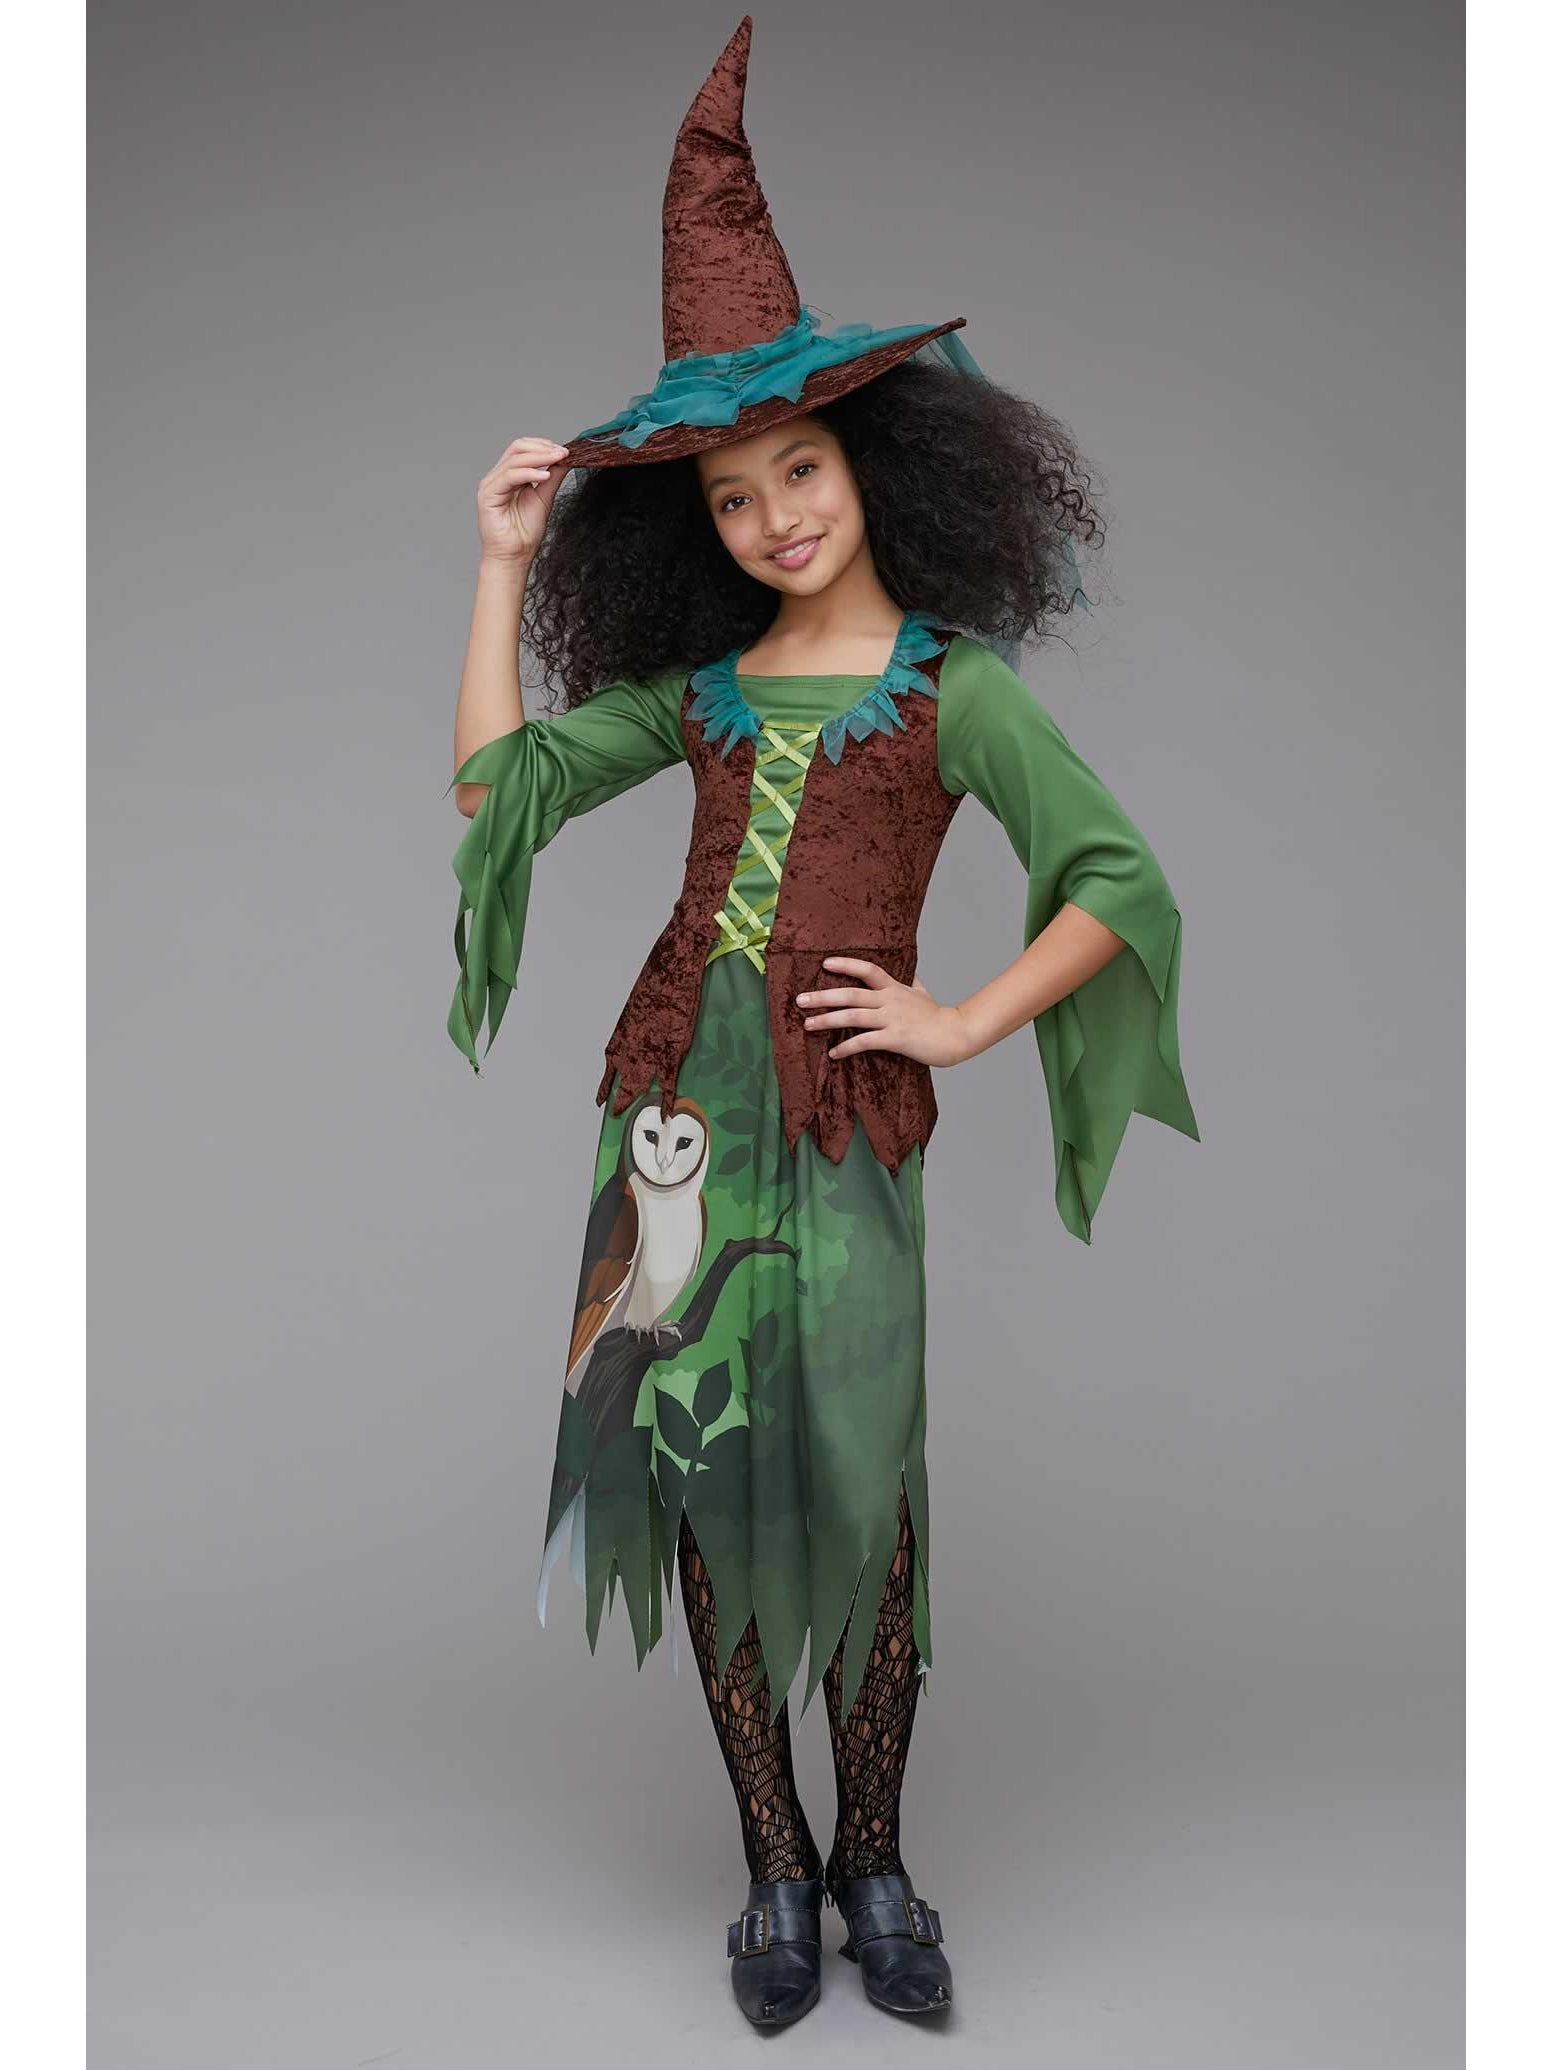 Wild Woods Witch Costume For Girls Witches Costumes Dress Up Chasing Fireflies